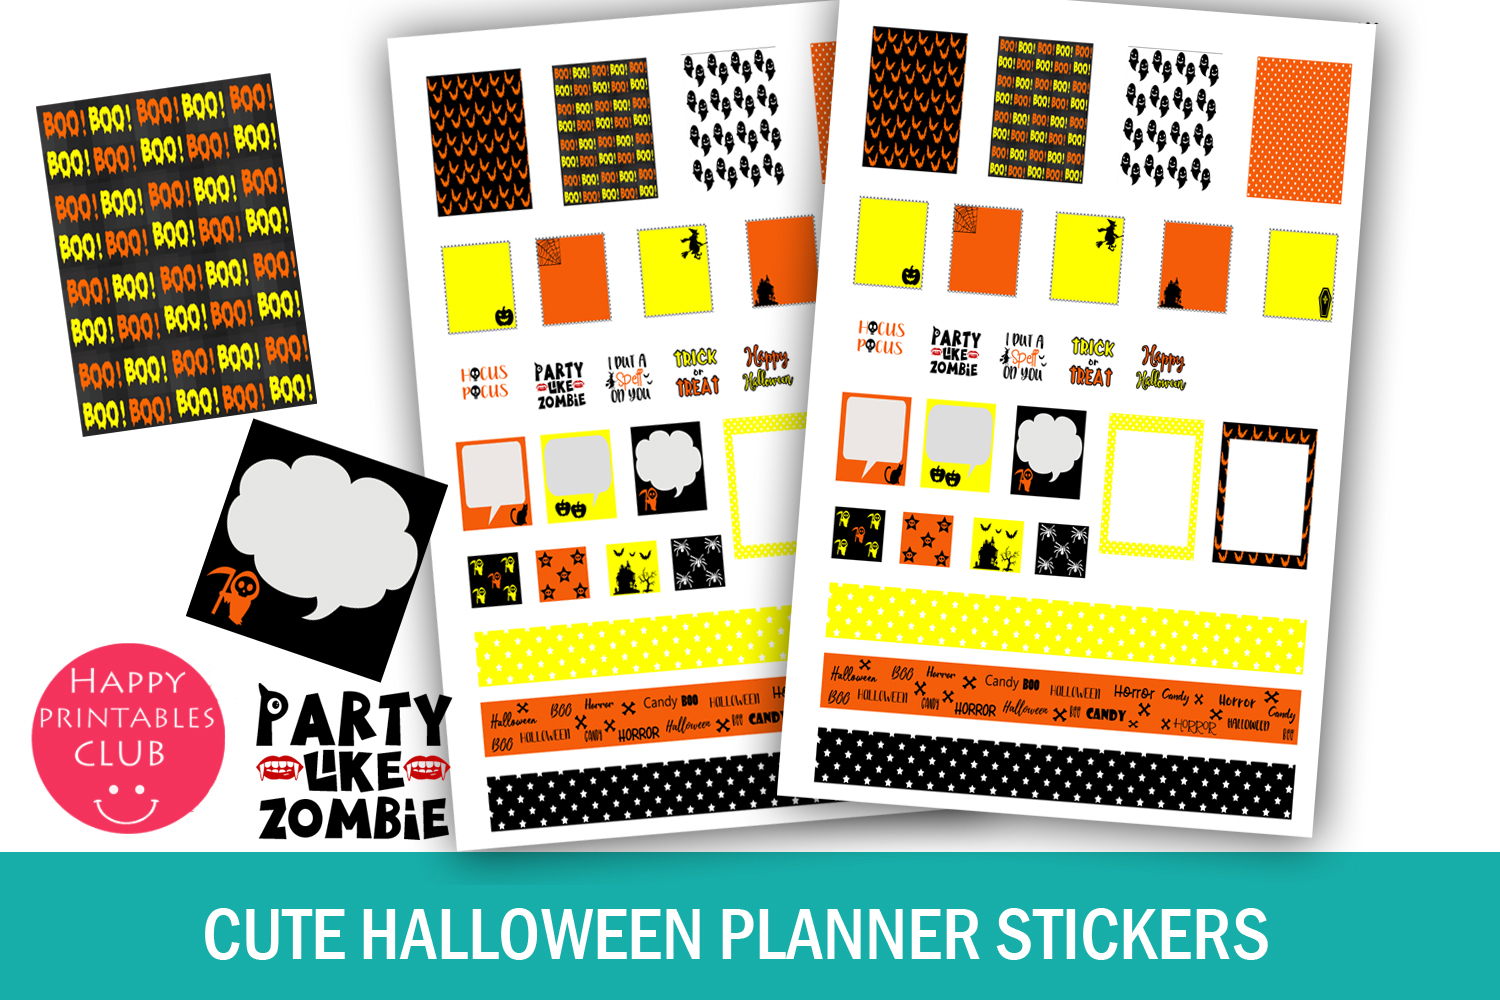 photo about Halloween Stickers Printable identified as Adorable Halloween Planner Stickers- Printable Halloween Sticker